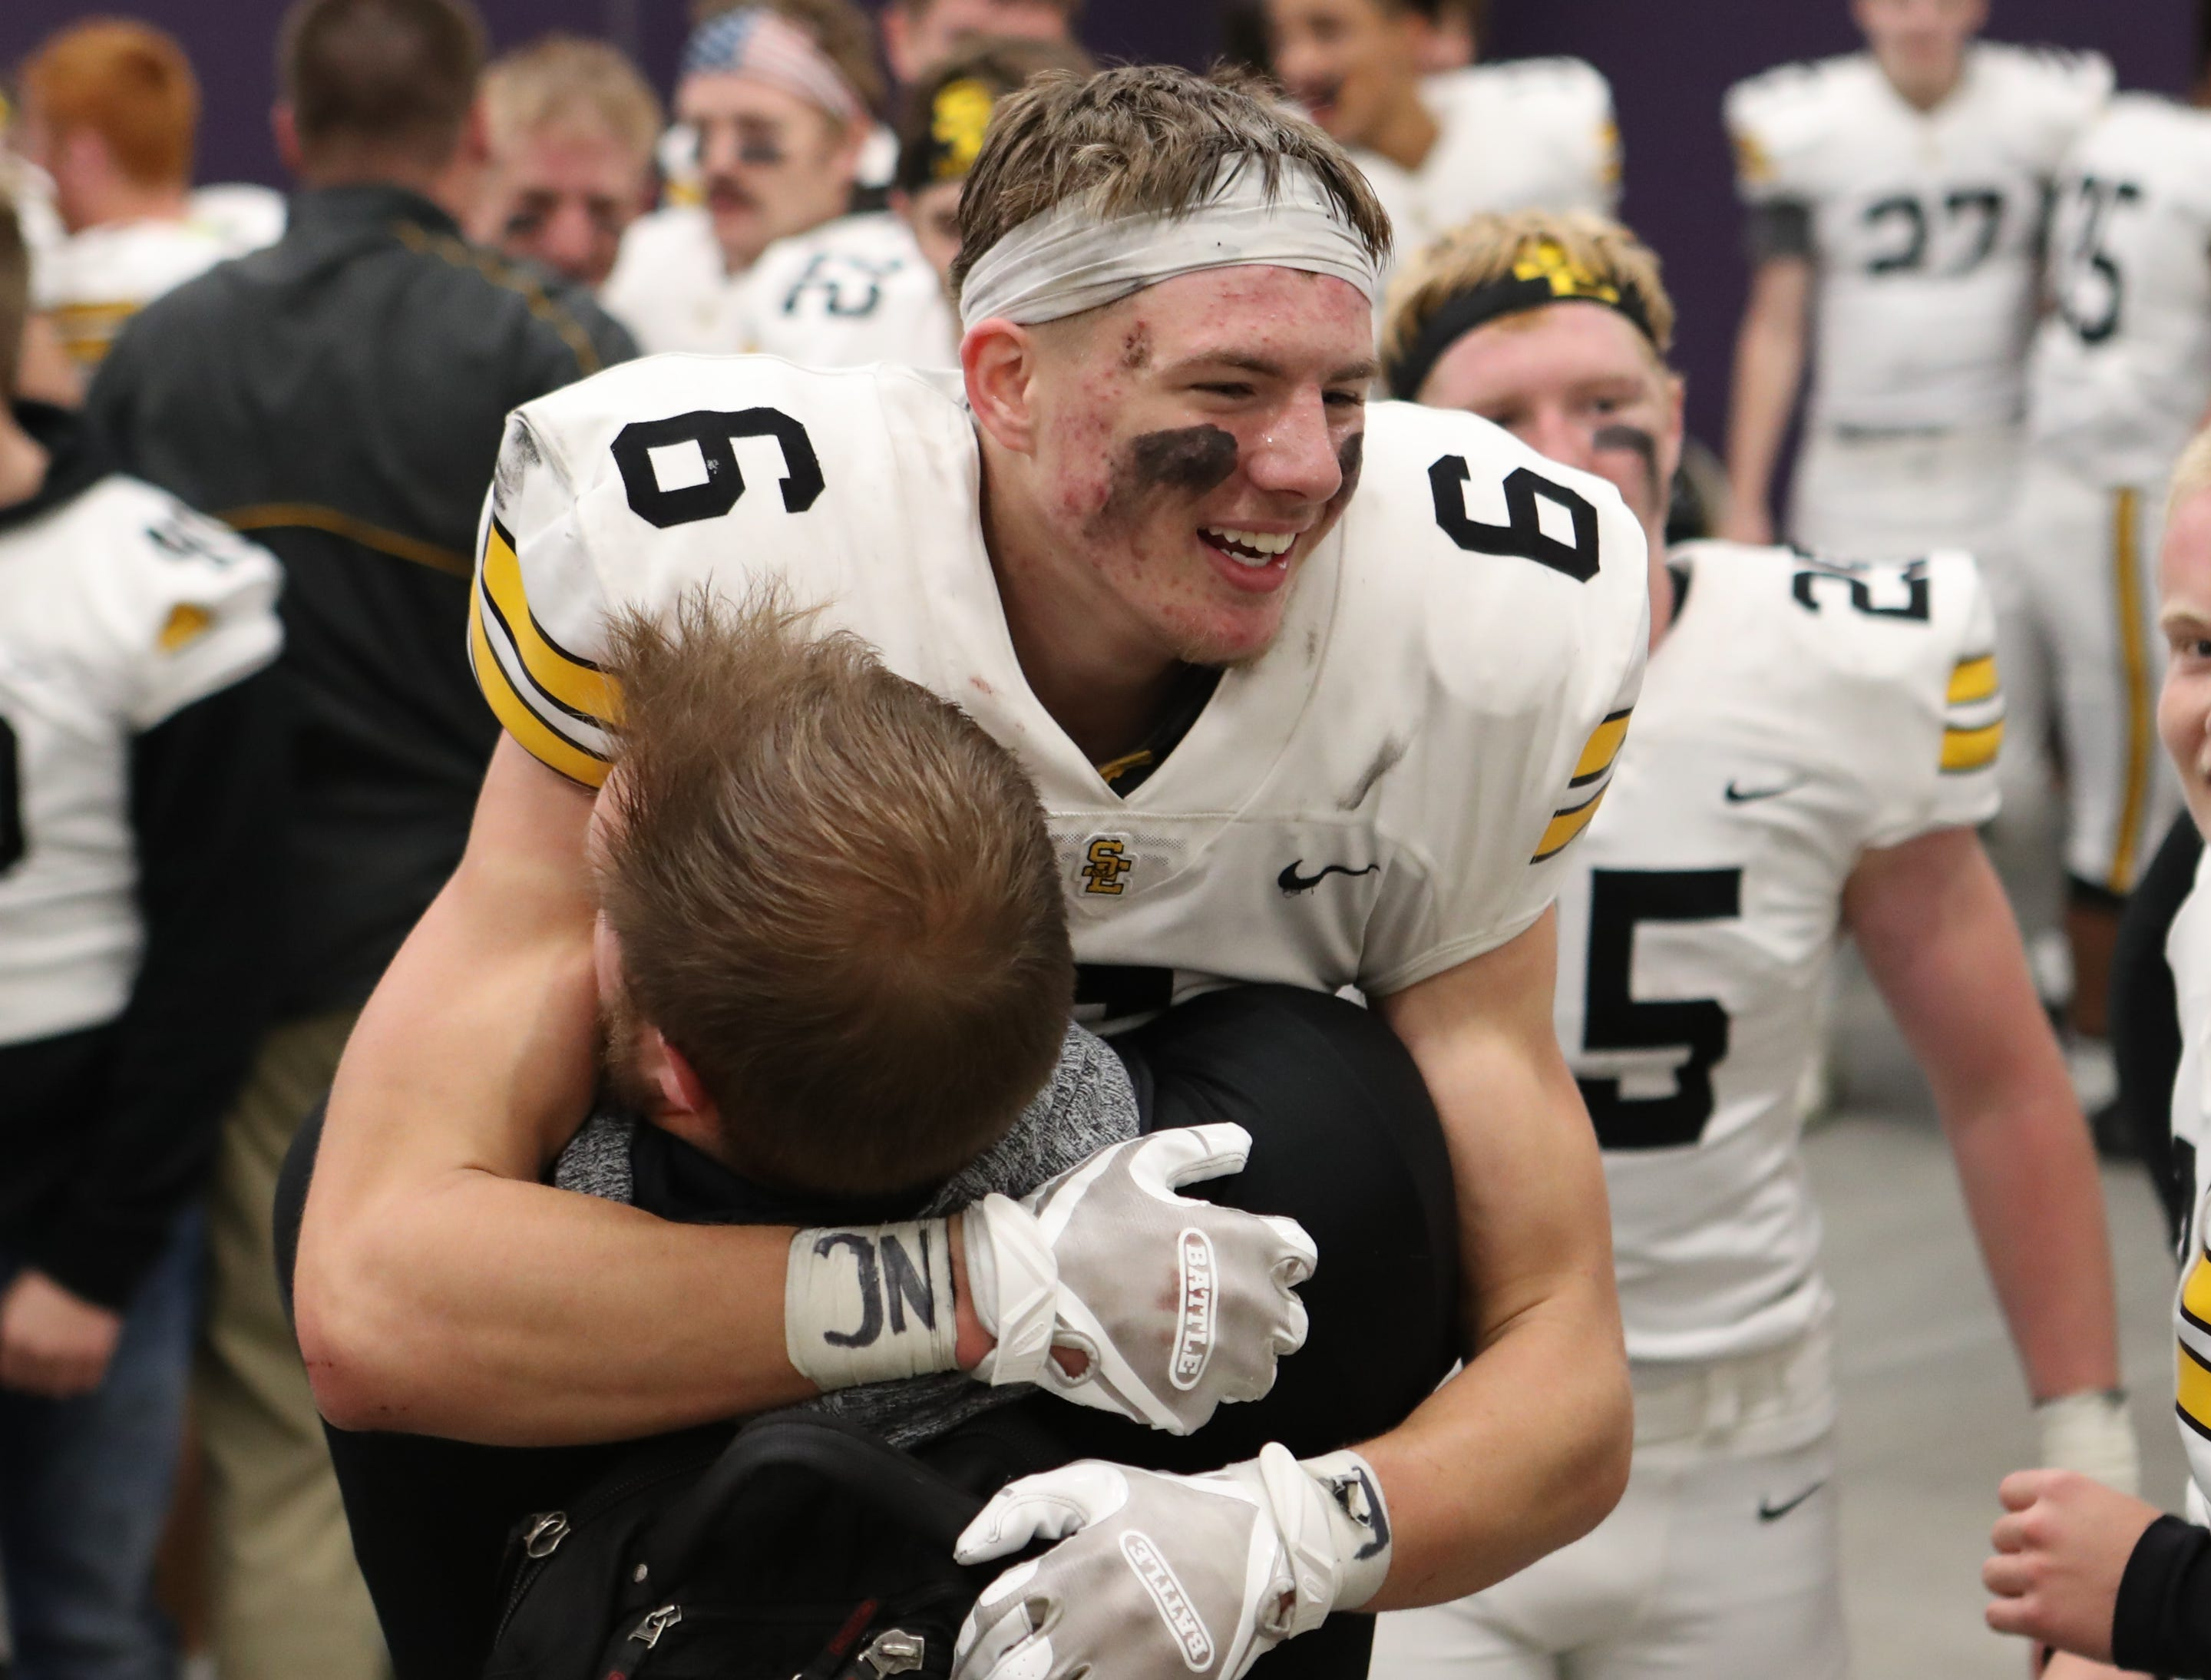 Nov 2, 2018; Johnston, IA, USA; Southeast Polk Rams Dylan Travis (6) hugs Coach Soelter after their win at Johnston Stadium. The Rams beat the Dragons 21-7.